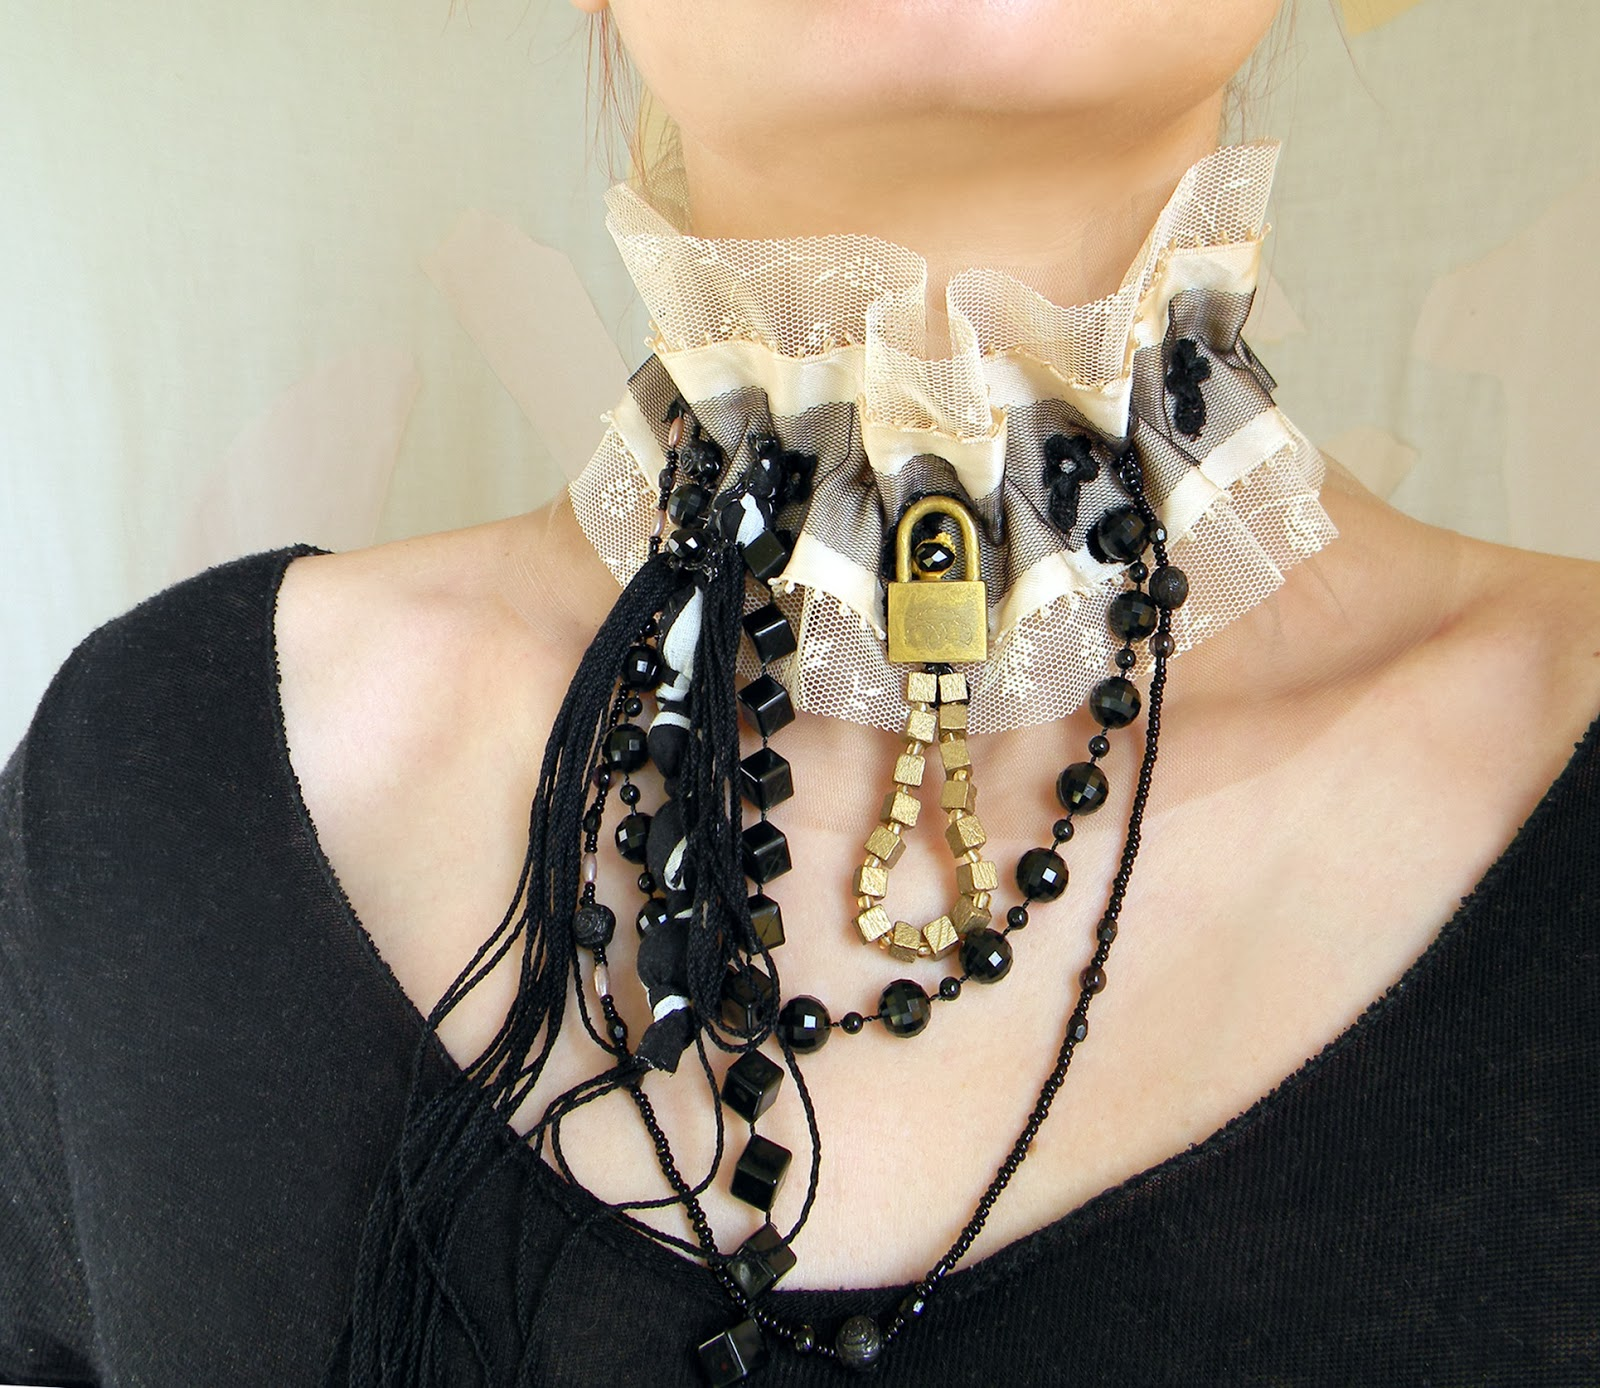 Unique Handmade Victorian Steampunk Choker Textile Black and Ivory Neck Piece